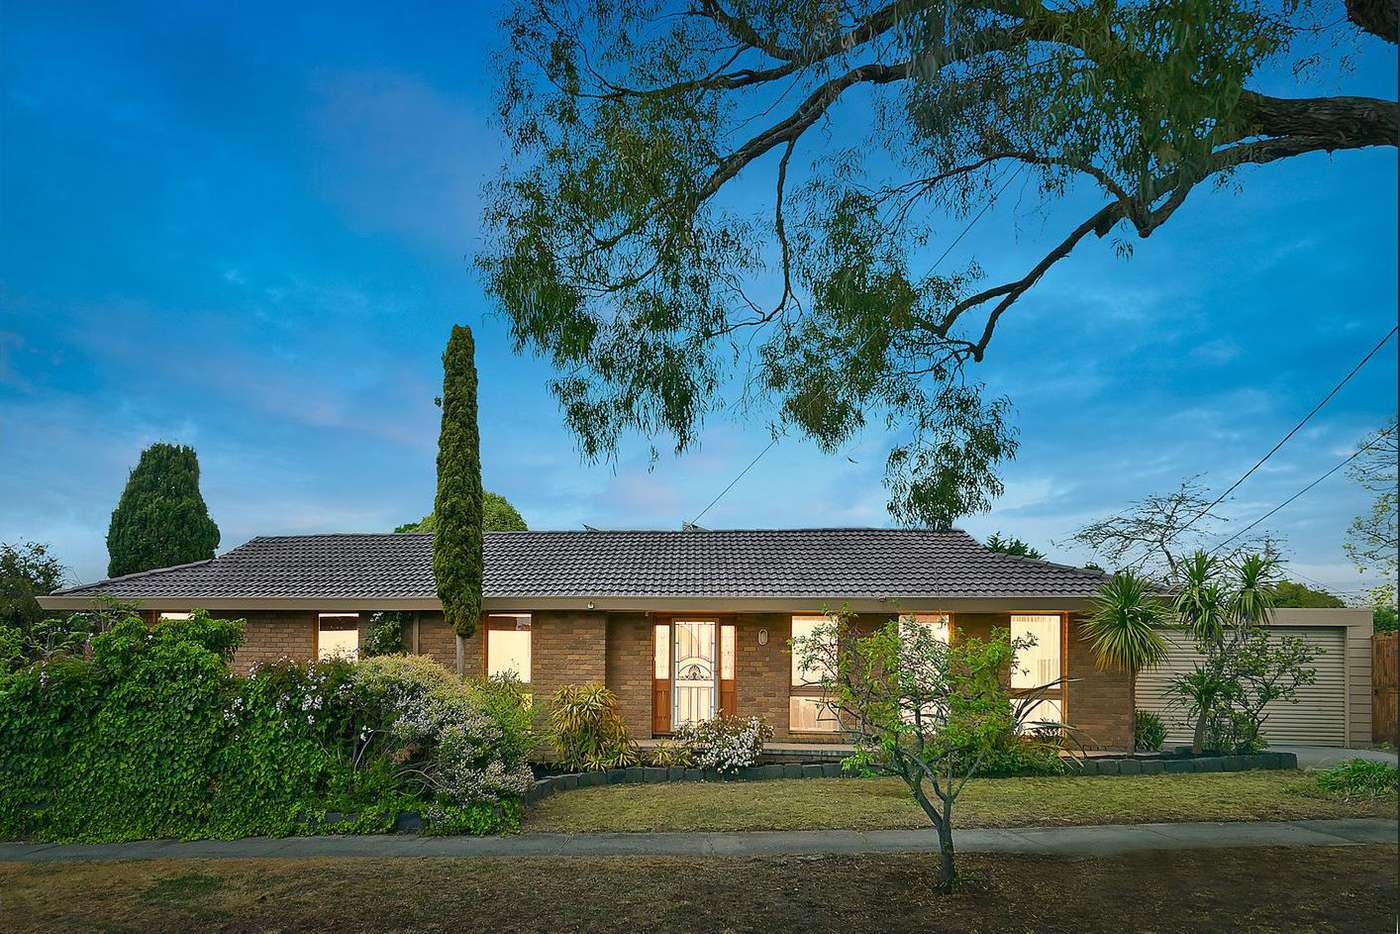 Main view of Homely house listing, 44 Guinevere Parade, Glen Waverley, VIC 3150